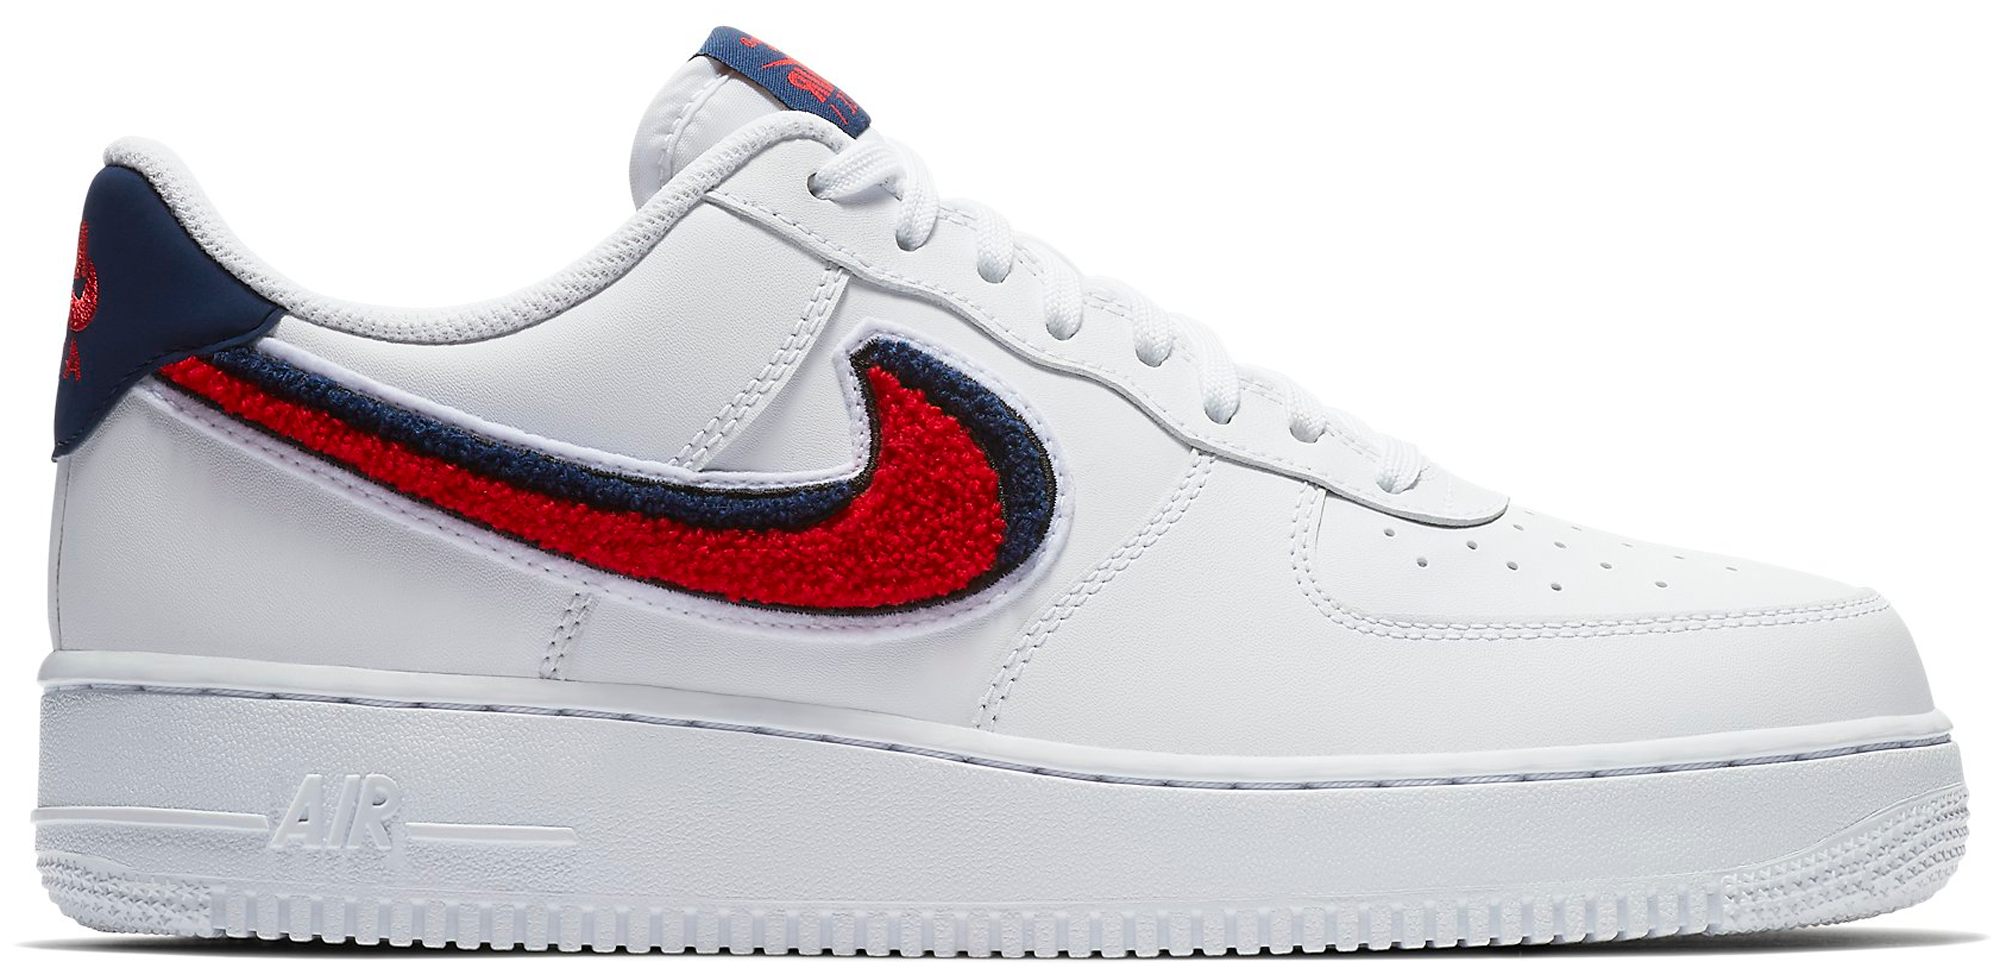 online store 8eb89 d4eee White And Red High Top Nike Shoes